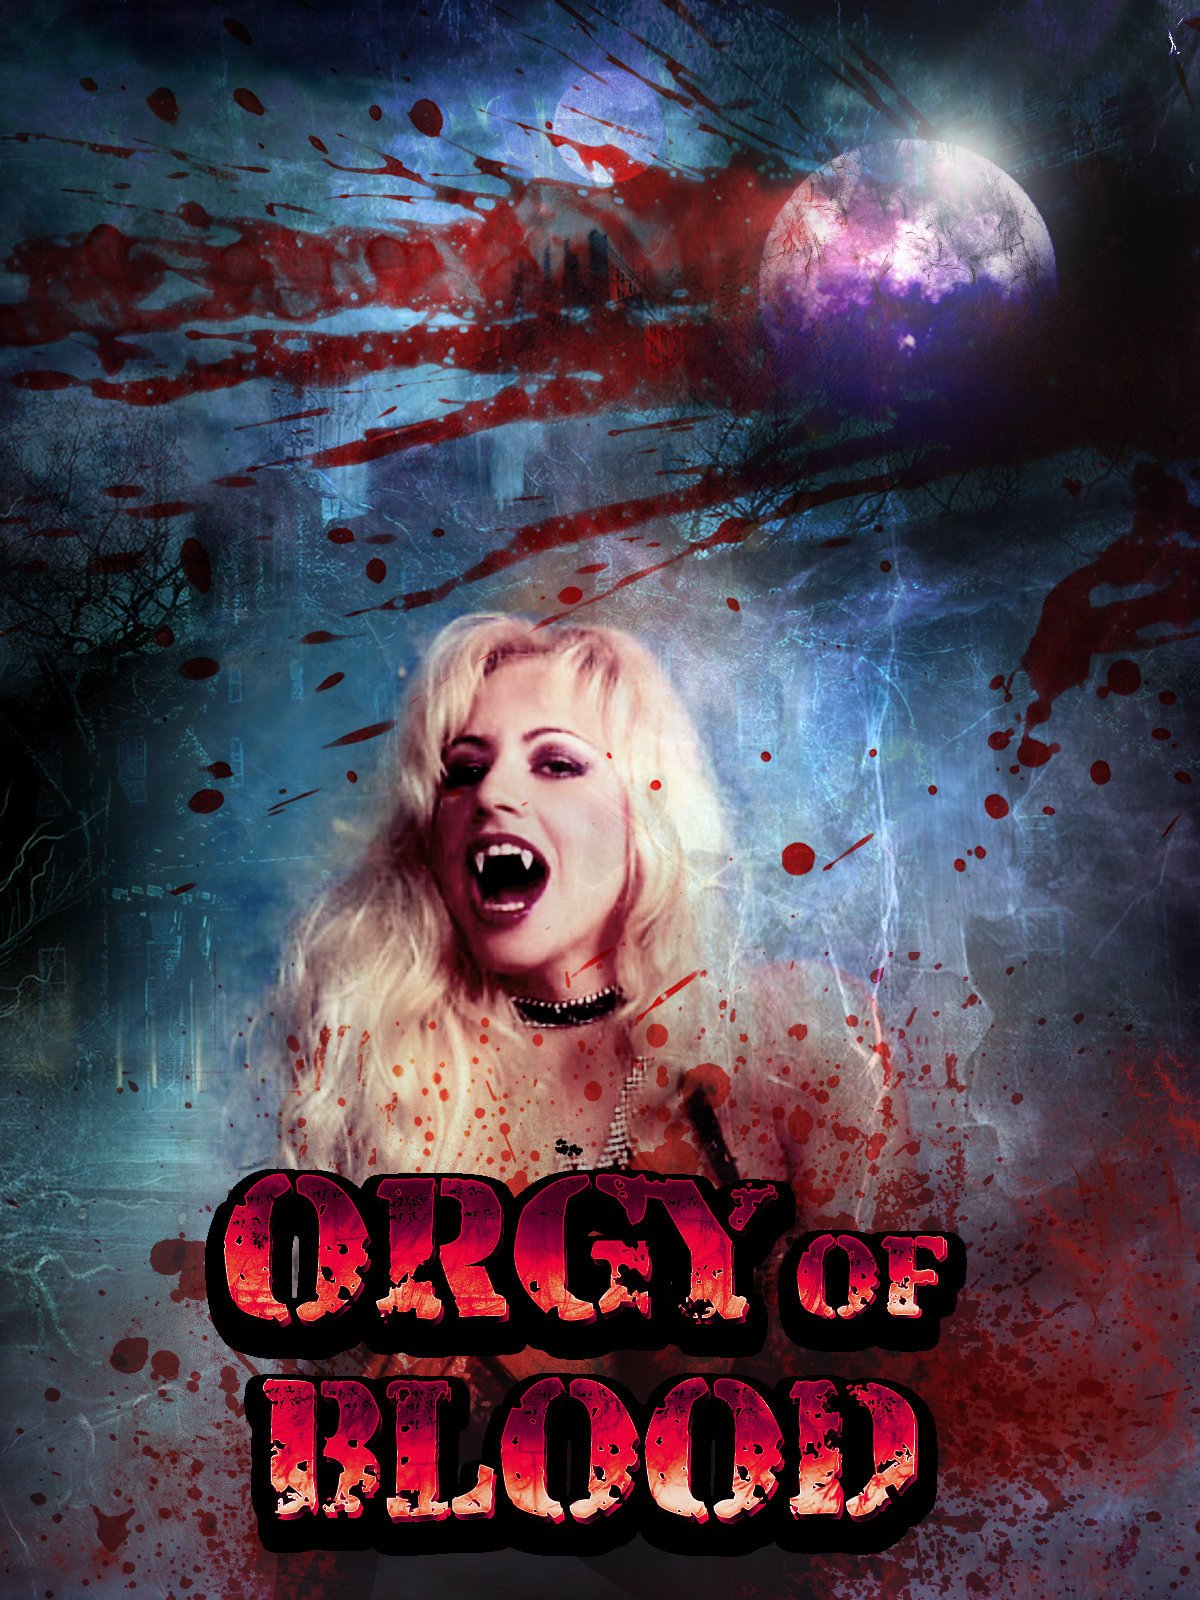 Countess dracula orgy of love, nude actress fucked by